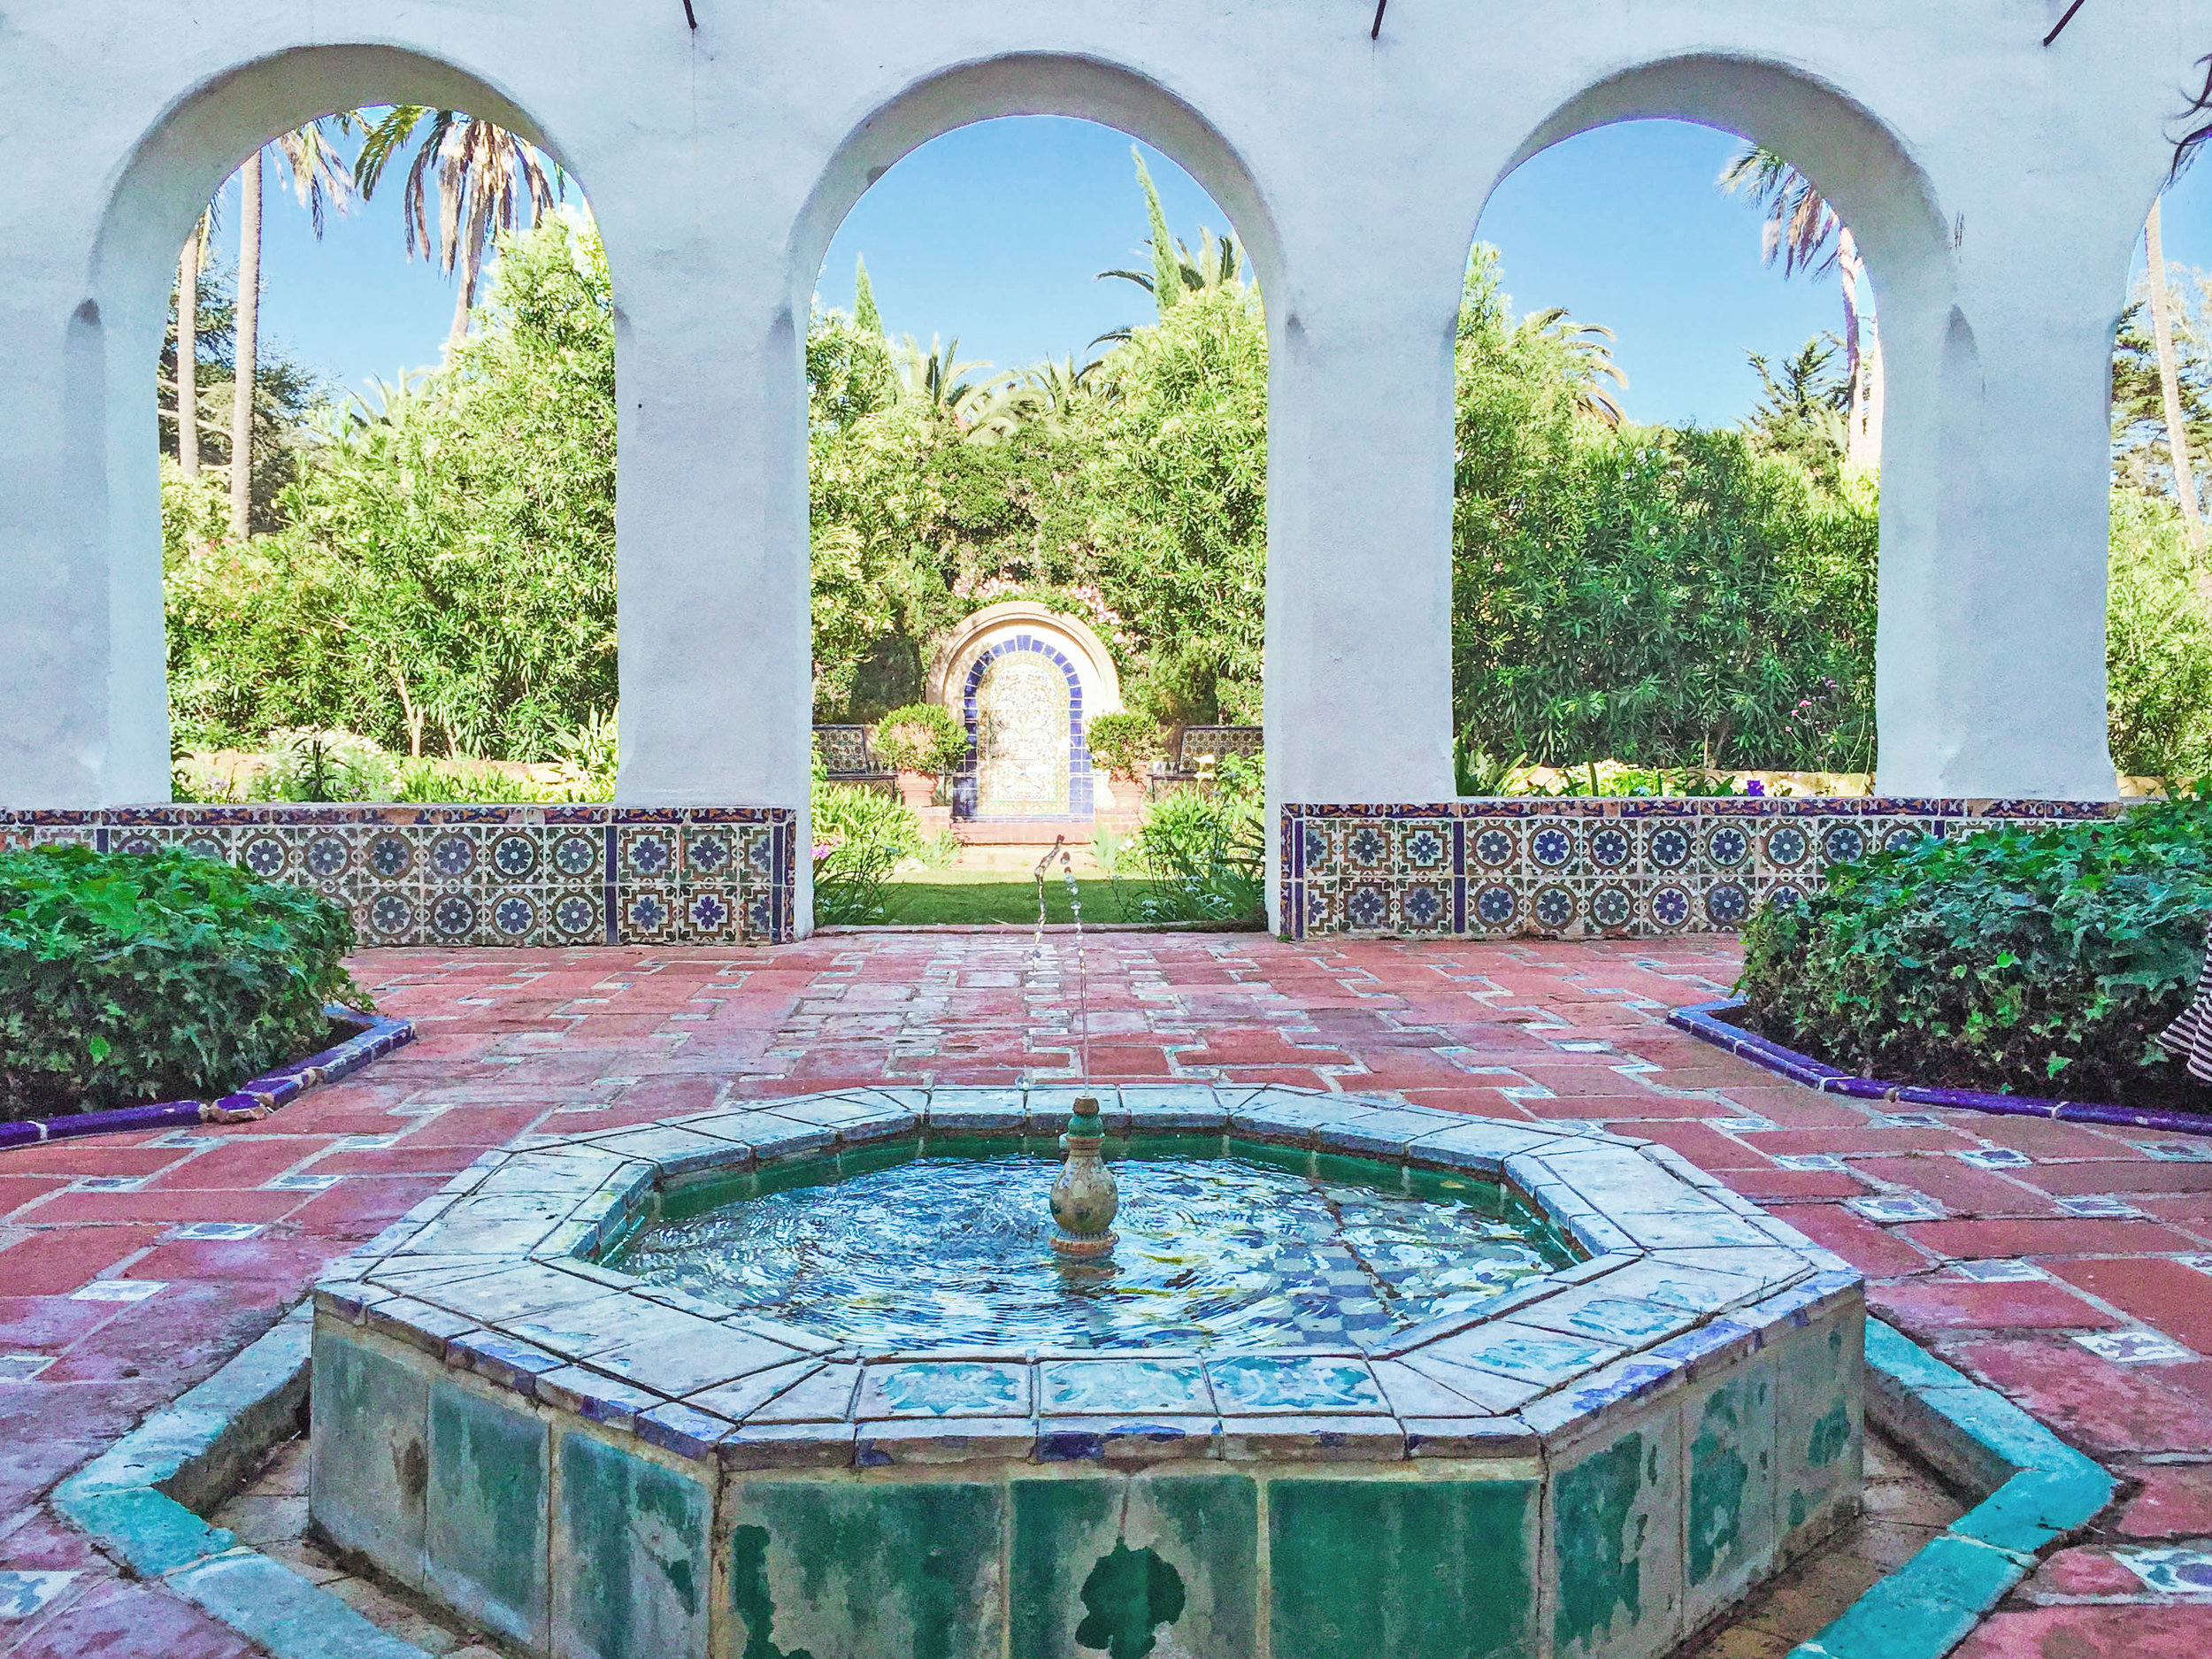 The fountains at Casa del Herrero are undergoing restoration to it's former glory.